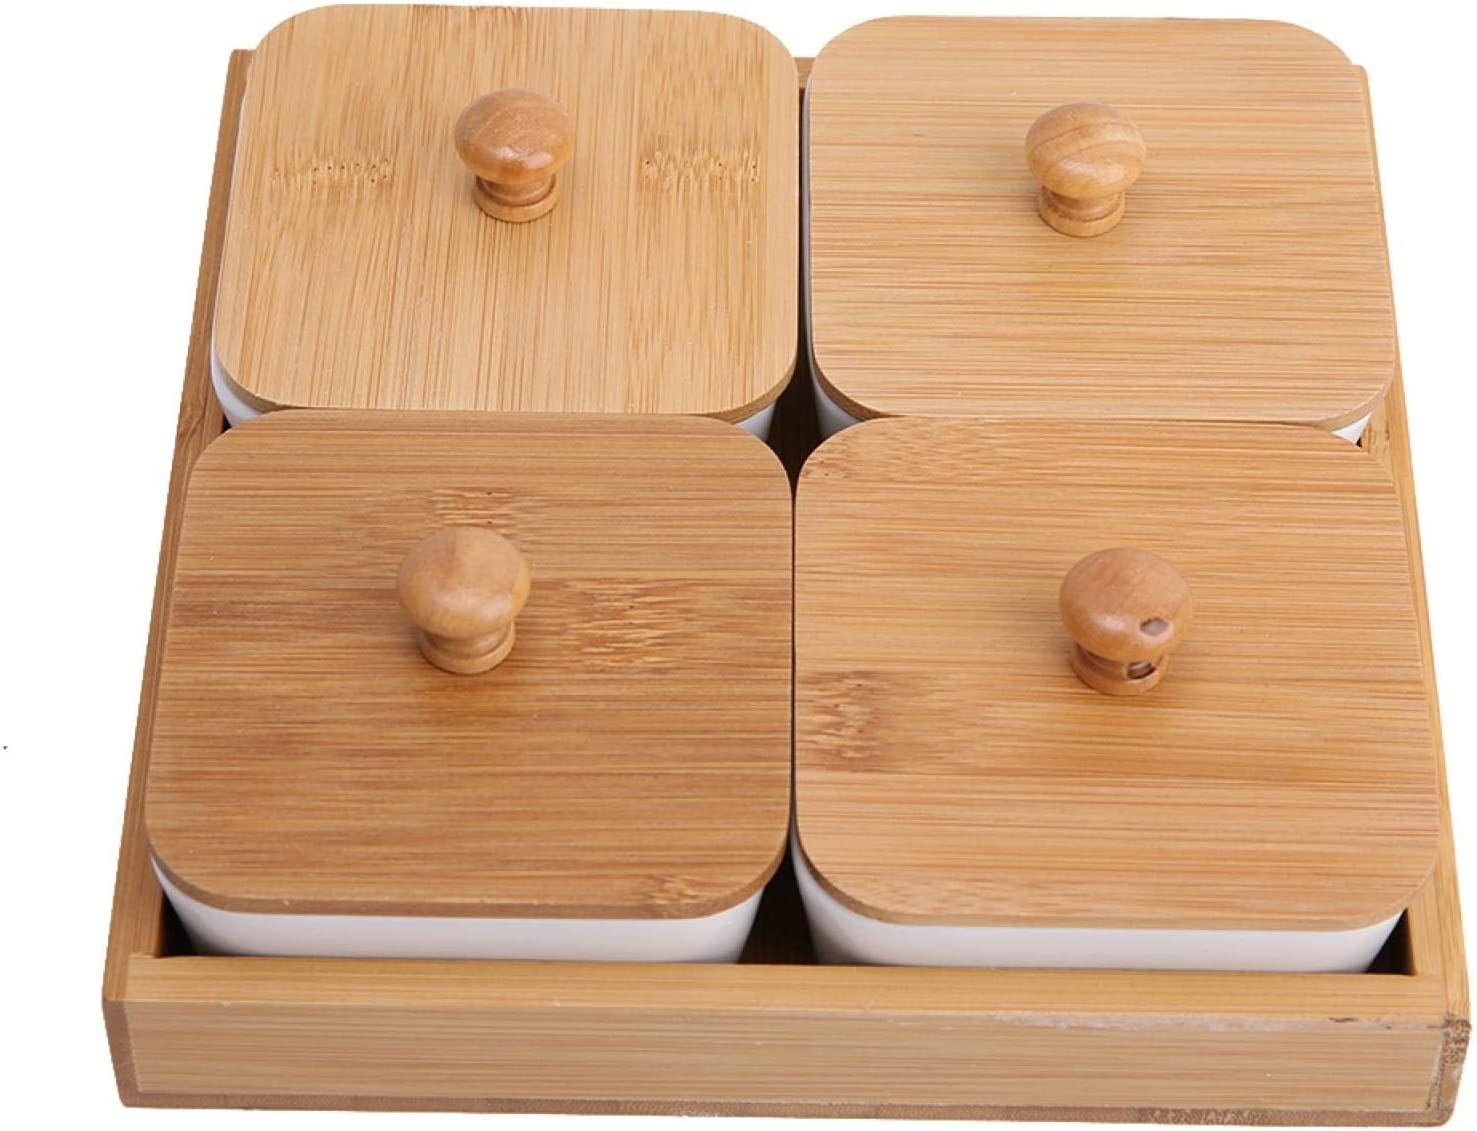 Ceramic Serving Plate National products Set Appetizer B Max 90% OFF with